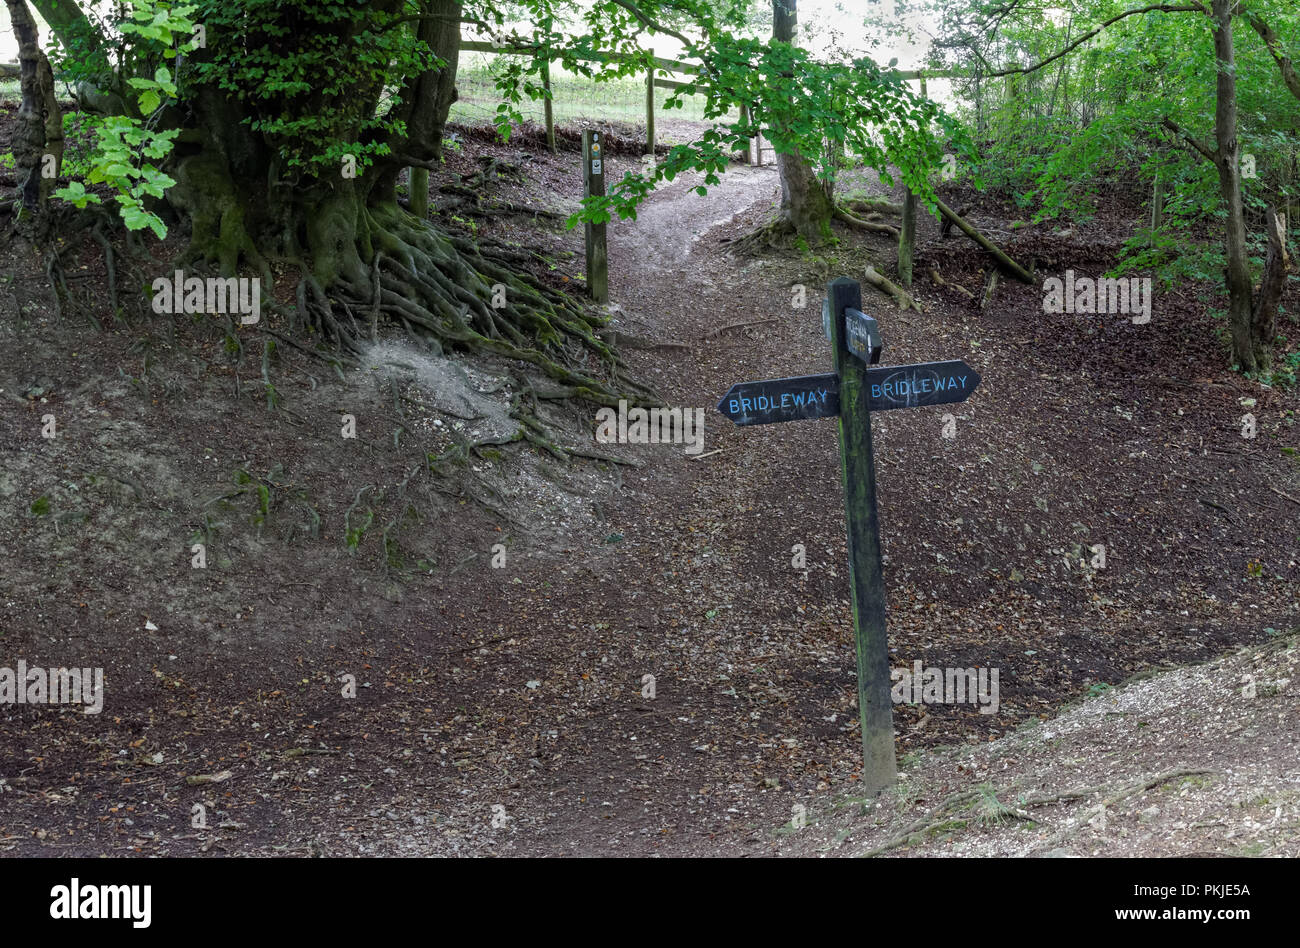 Bridleway and ridgeway sign on Coombe Hill in the Chiltern Hills, Buckinghamshire, England United Kingdom UK - Stock Image